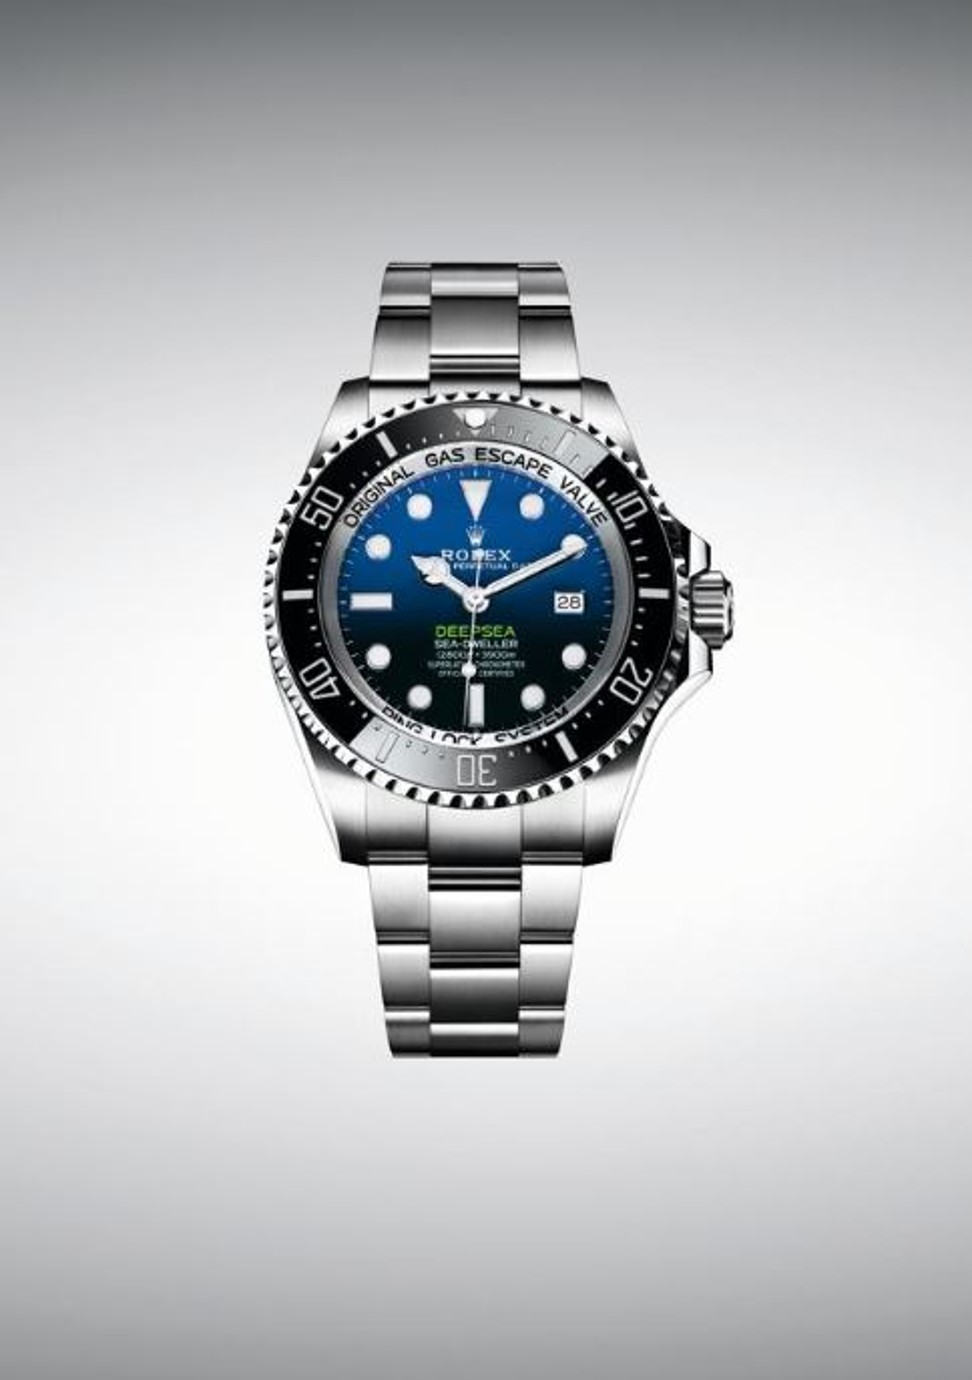 5 new rolex watches just hit baselworld 2018 | style magazine